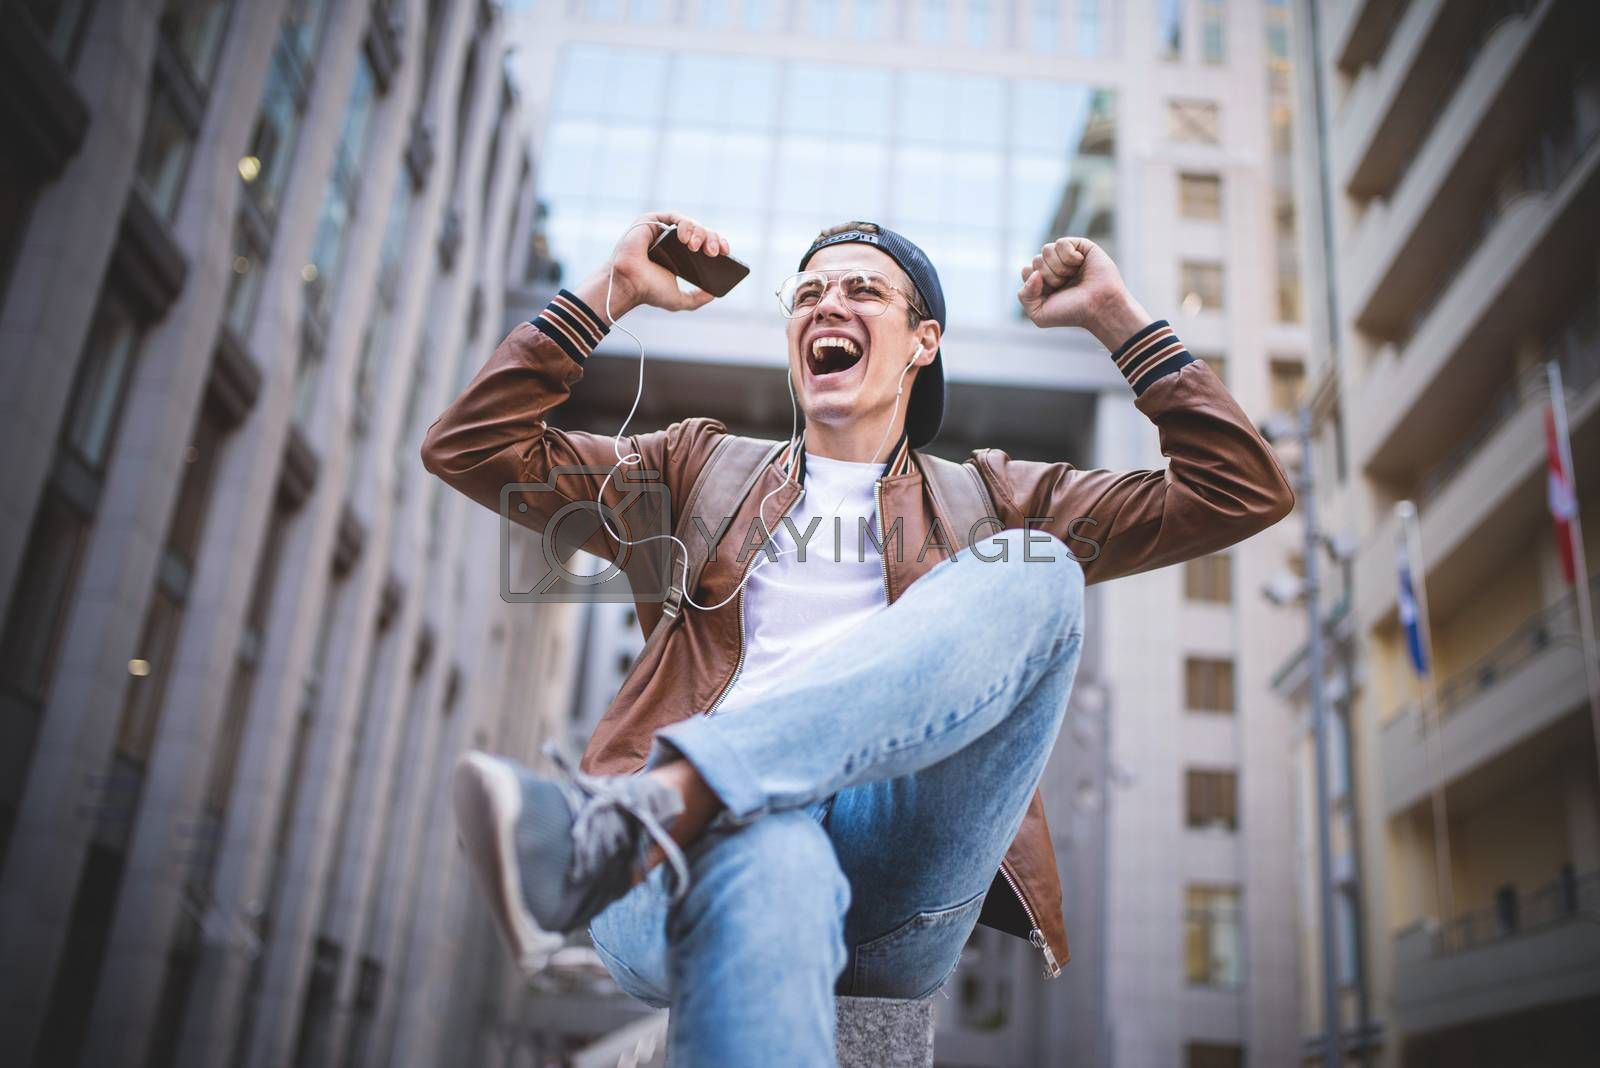 Royalty free image of Happy man listening to music with headphones from a smartphone on the street. by Nickstock